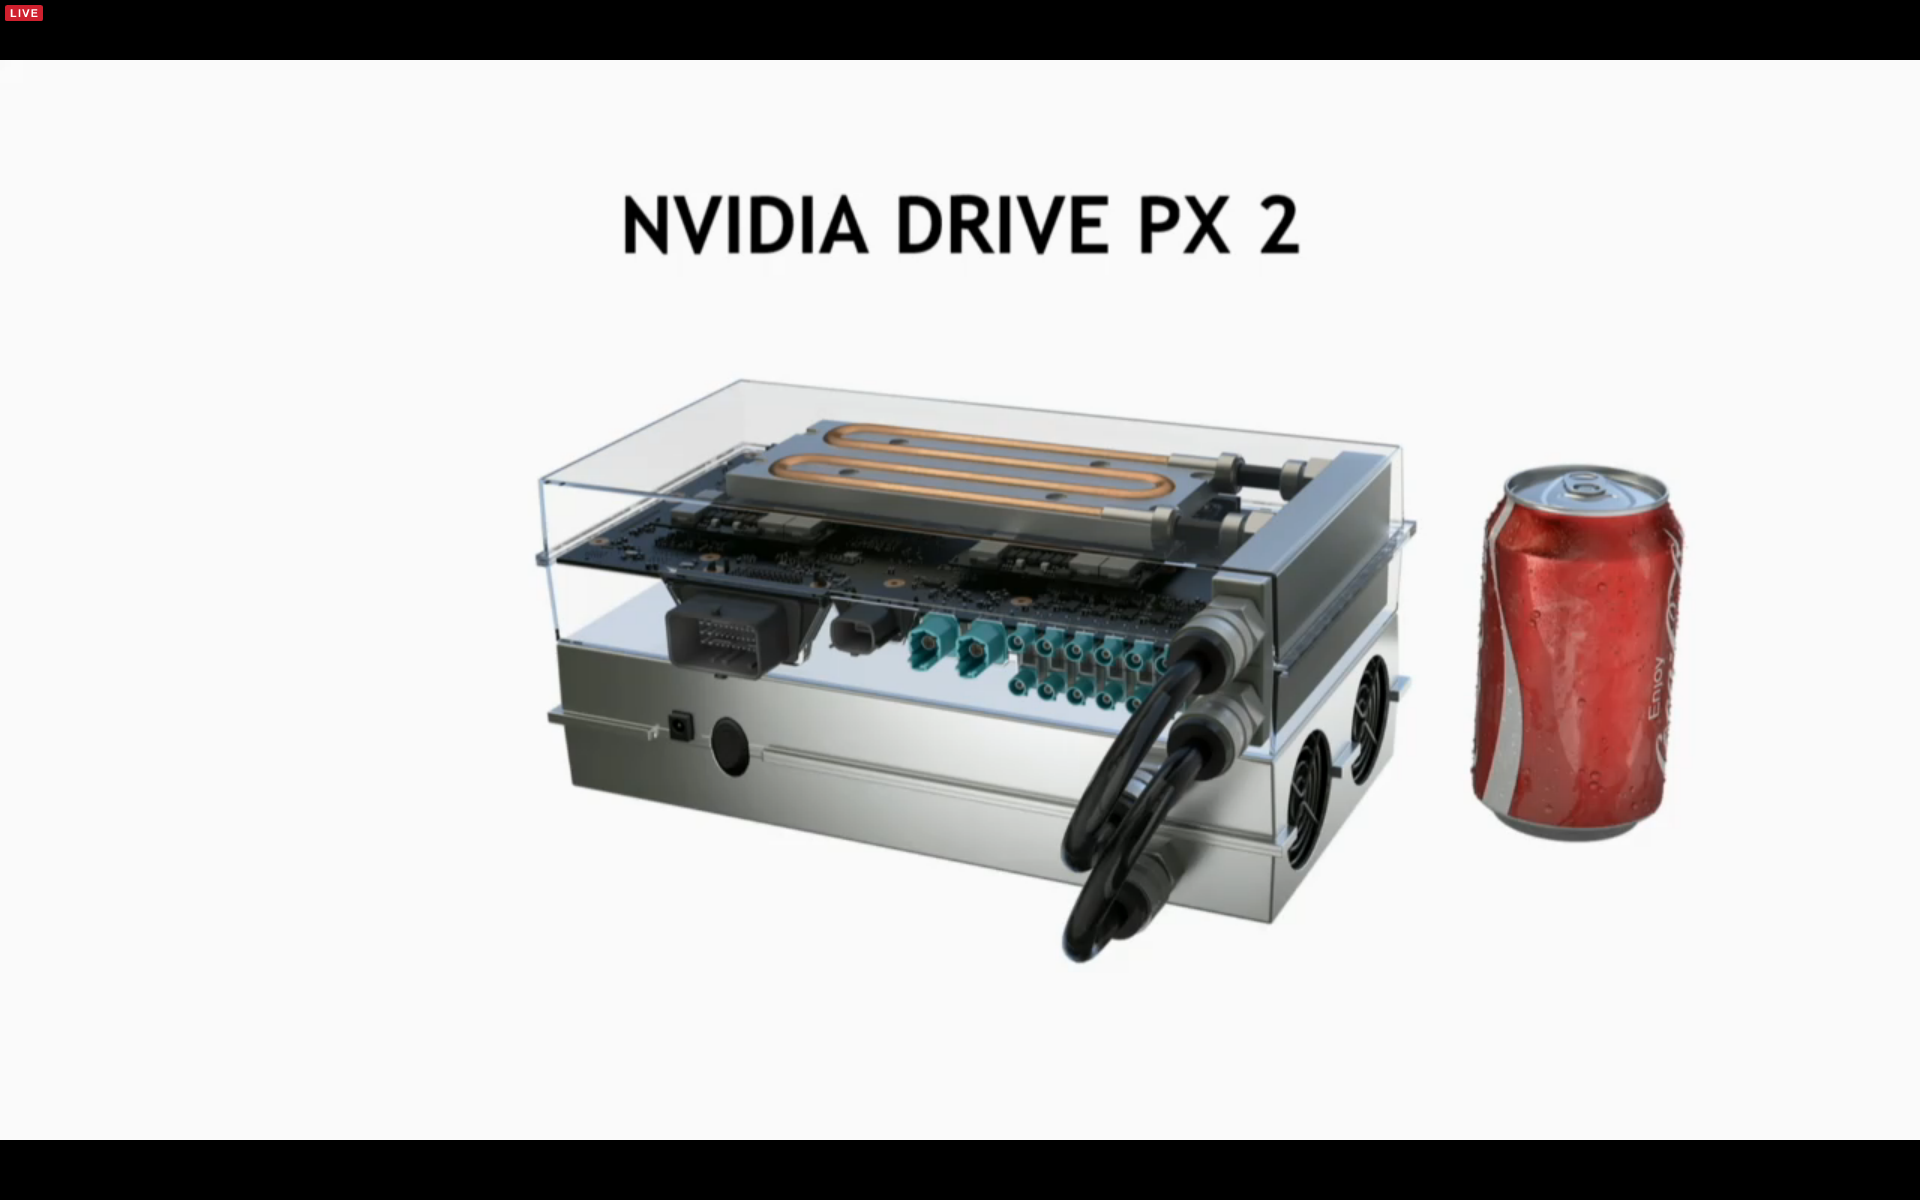 <p>Although incredibly powerful, the Drive PX 2 computer is about the size of a lunchbox, and designed to fit into production cars.</p>